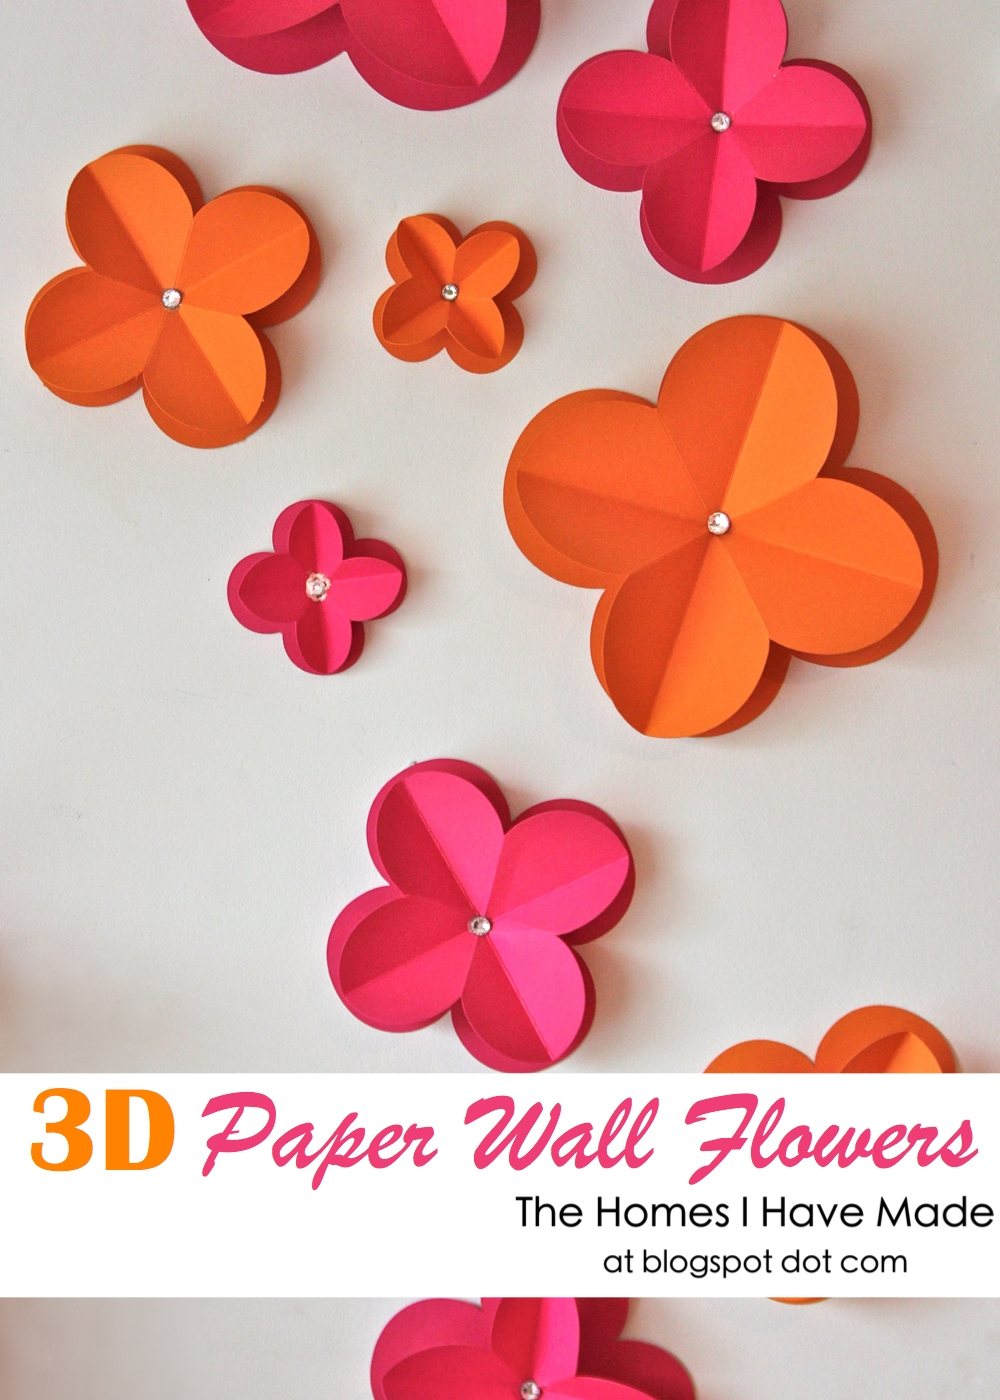 3d Paper Wall Flowers The Homes I Have Made